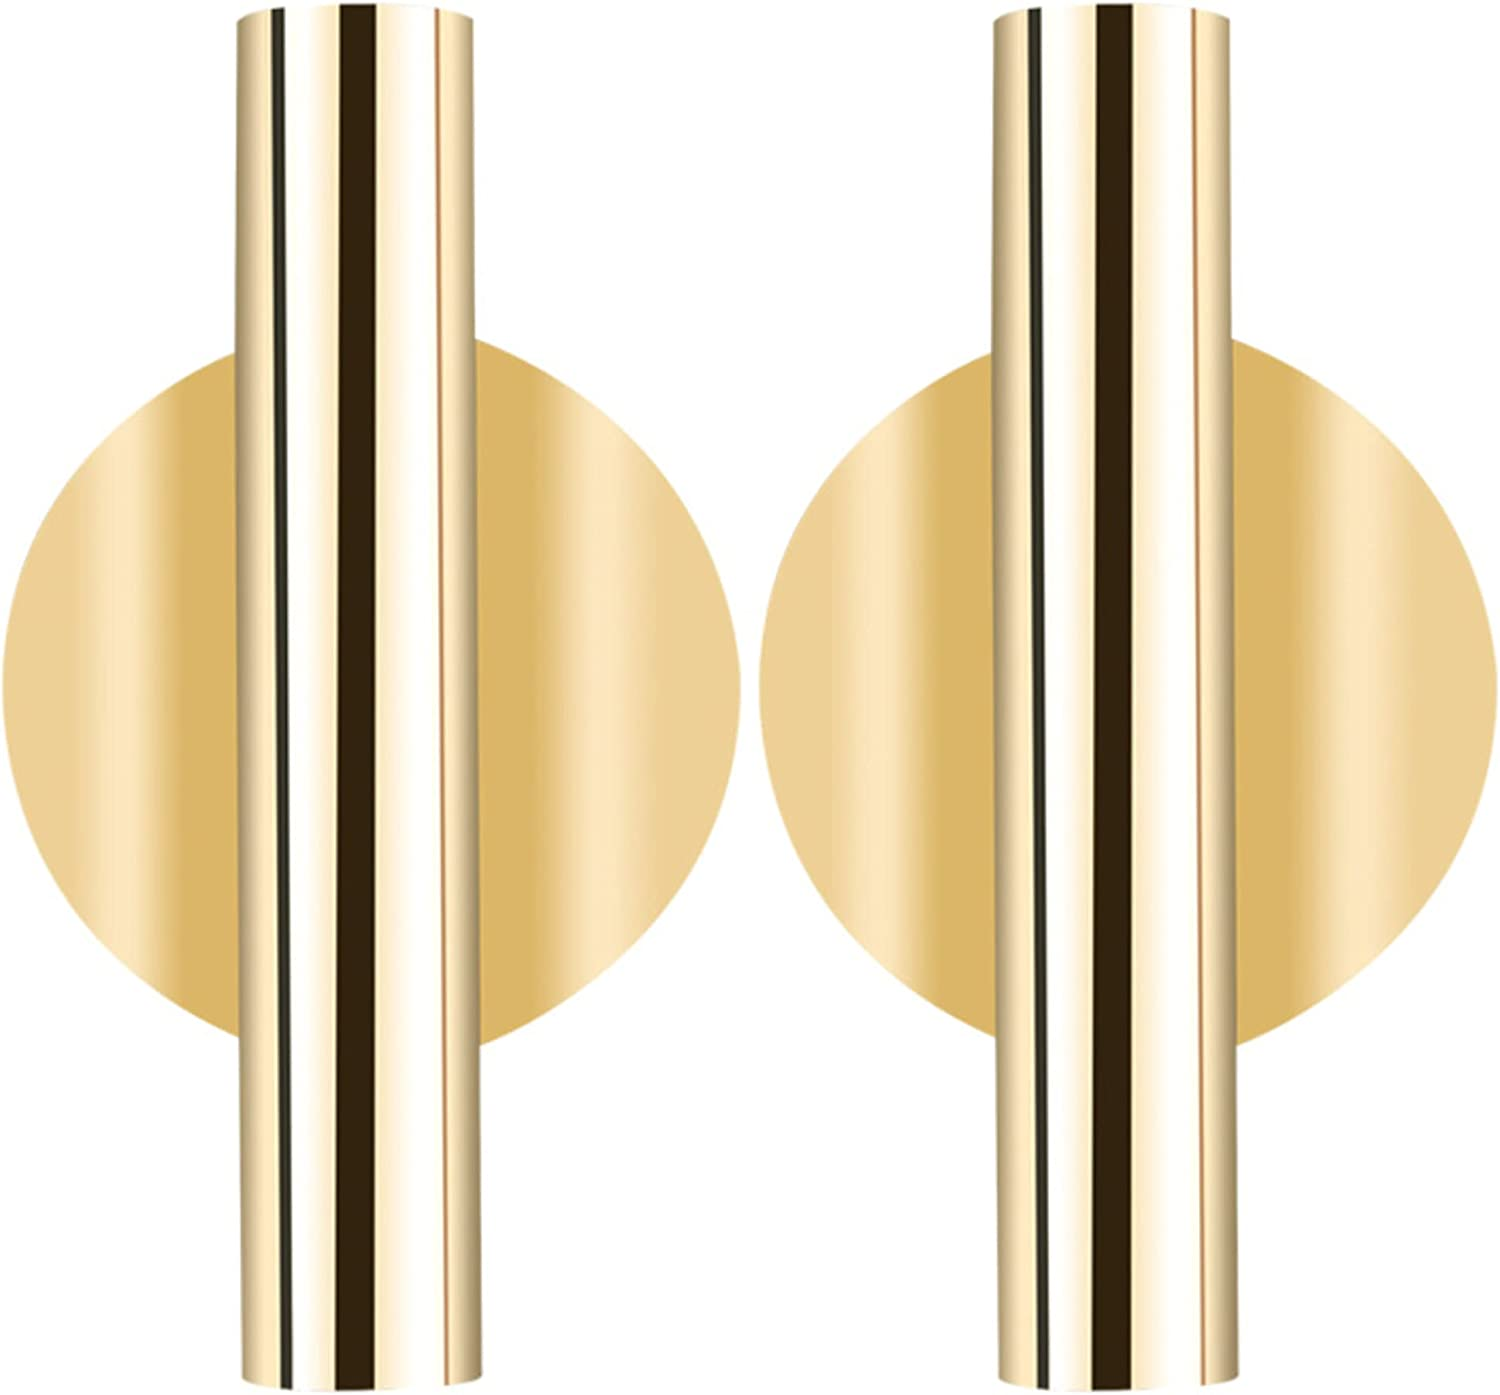 Papa's Pampas Gold Flower Vases for Cemetery Headstone and Wall Decor - 2 PCS